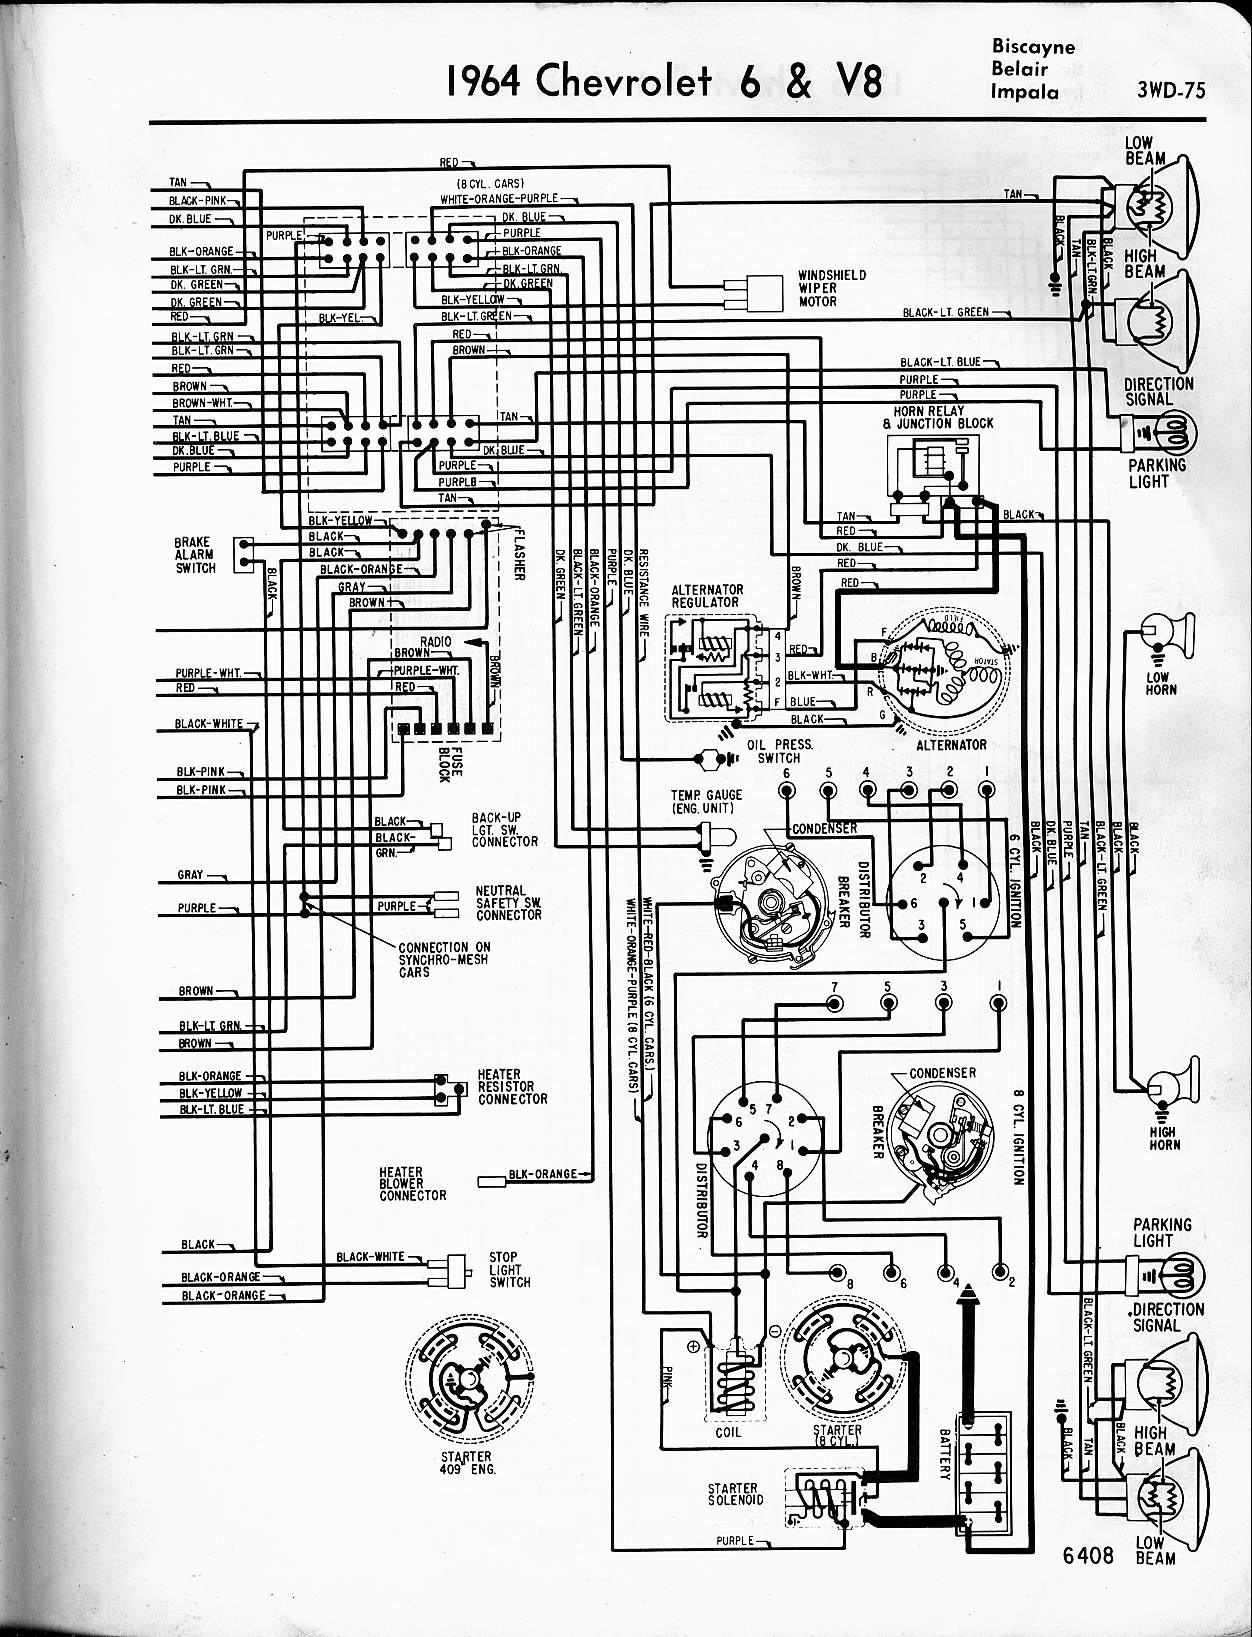 MWireChev64_3WD 075 1964 impala wiring diagram 1964 impala wiring diagram rear breaks 2001 chevy malibu ignition wiring diagram at gsmx.co